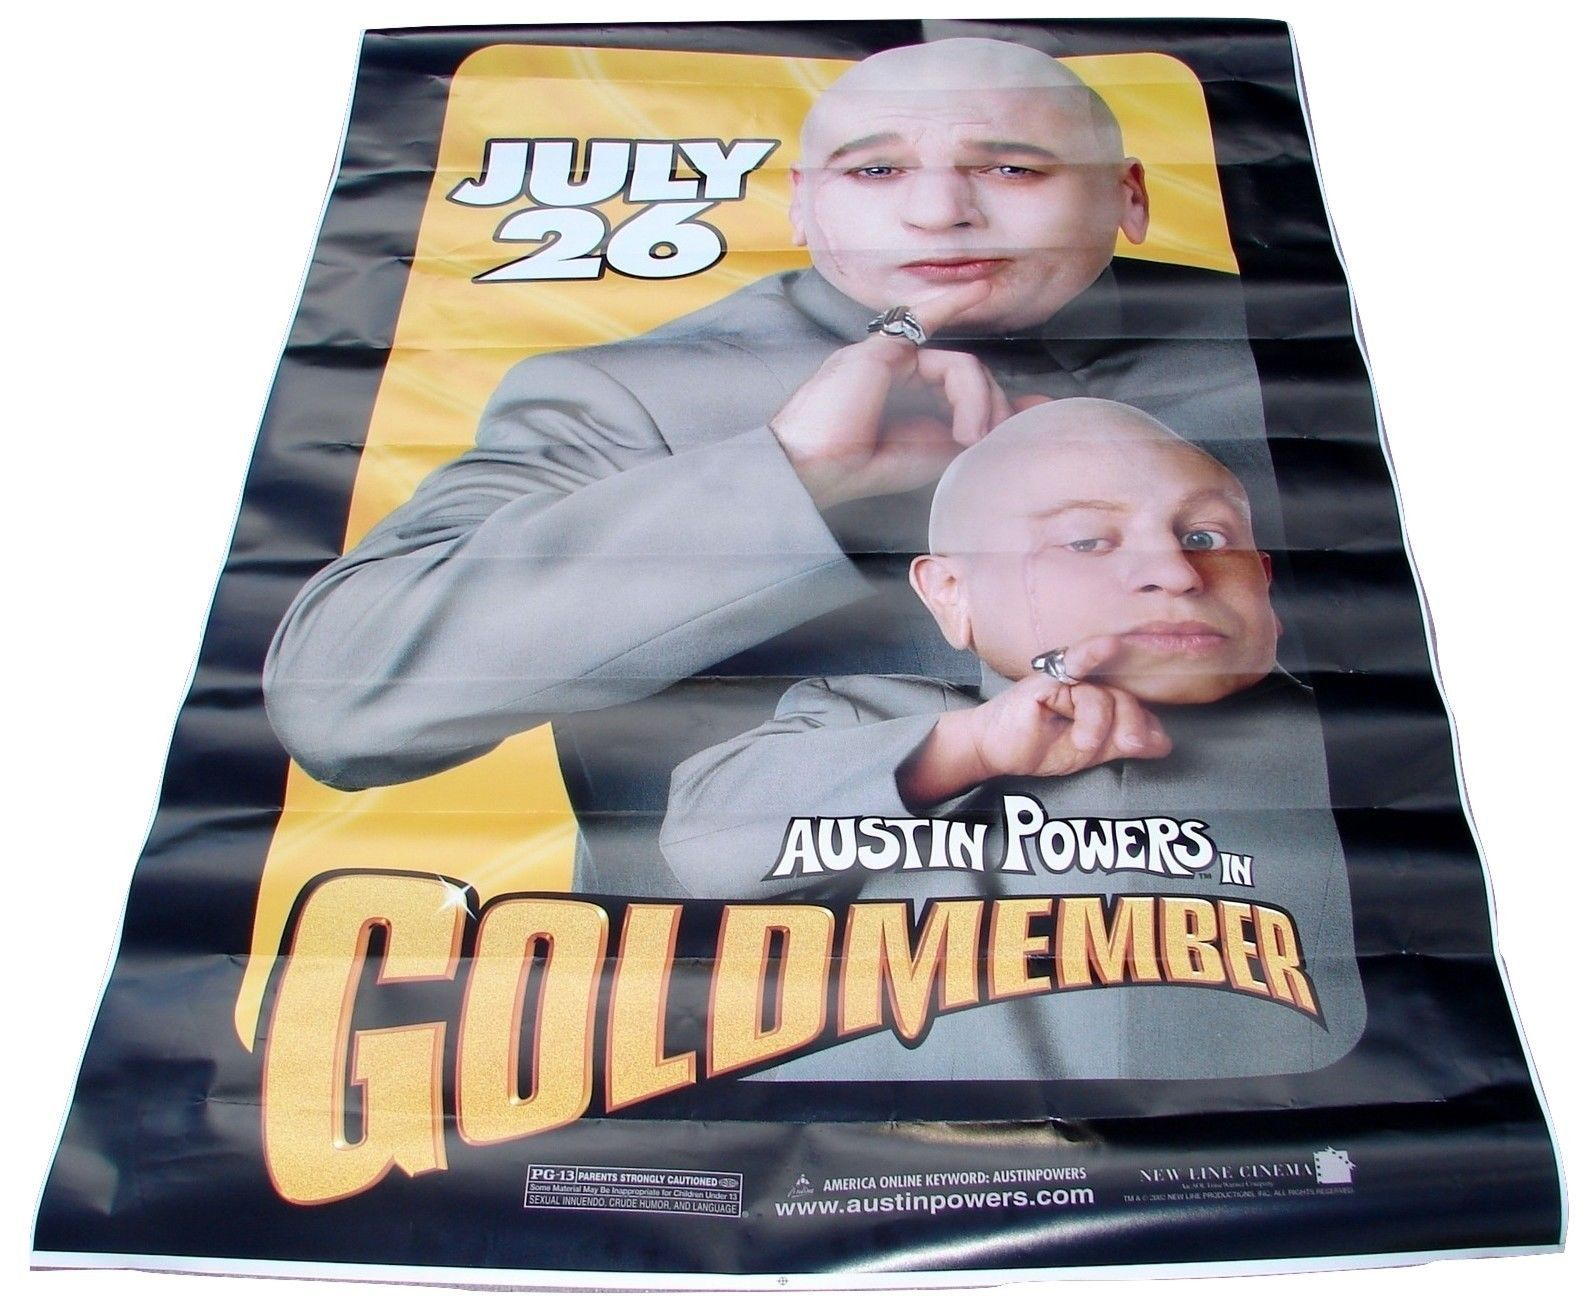 2002 AUSTIN POWERS In GOLDMEMBER Original Movie Poster Banner 48x72 (33)